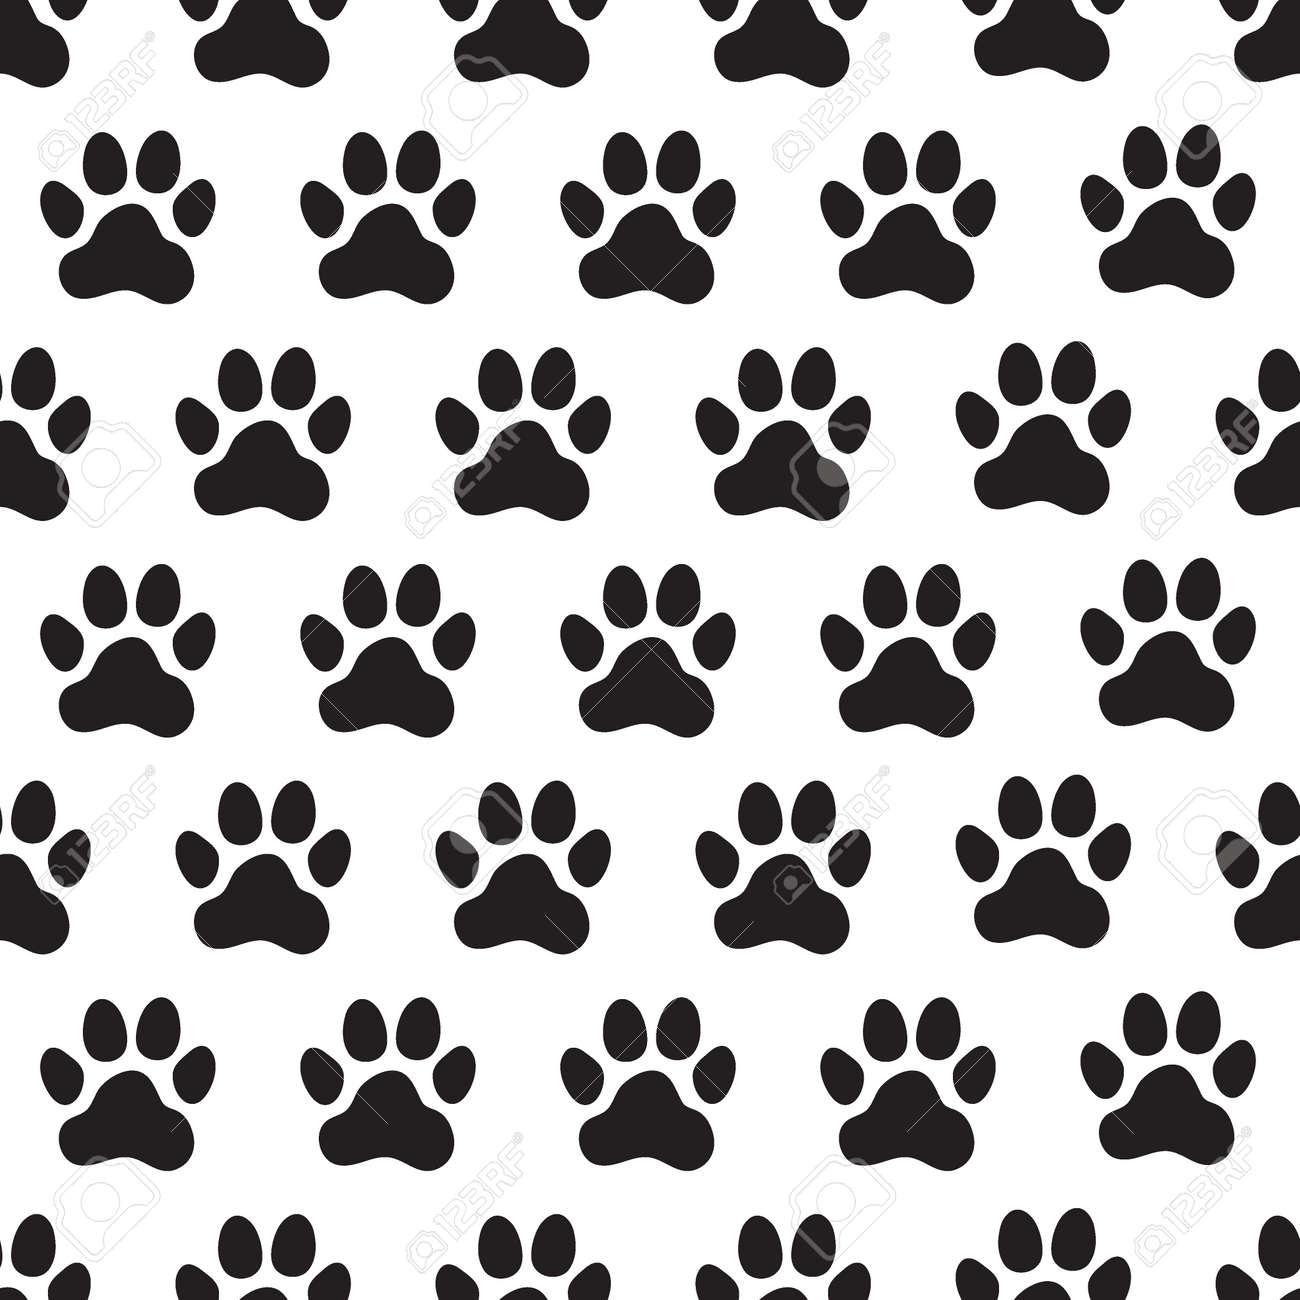 Paw Prints Seamless Pattern. Animal's (dog's) Paws. Vector Illustration.  Royalty Free Cliparts, Vectors, And Stock Illustration. Image 124789062.